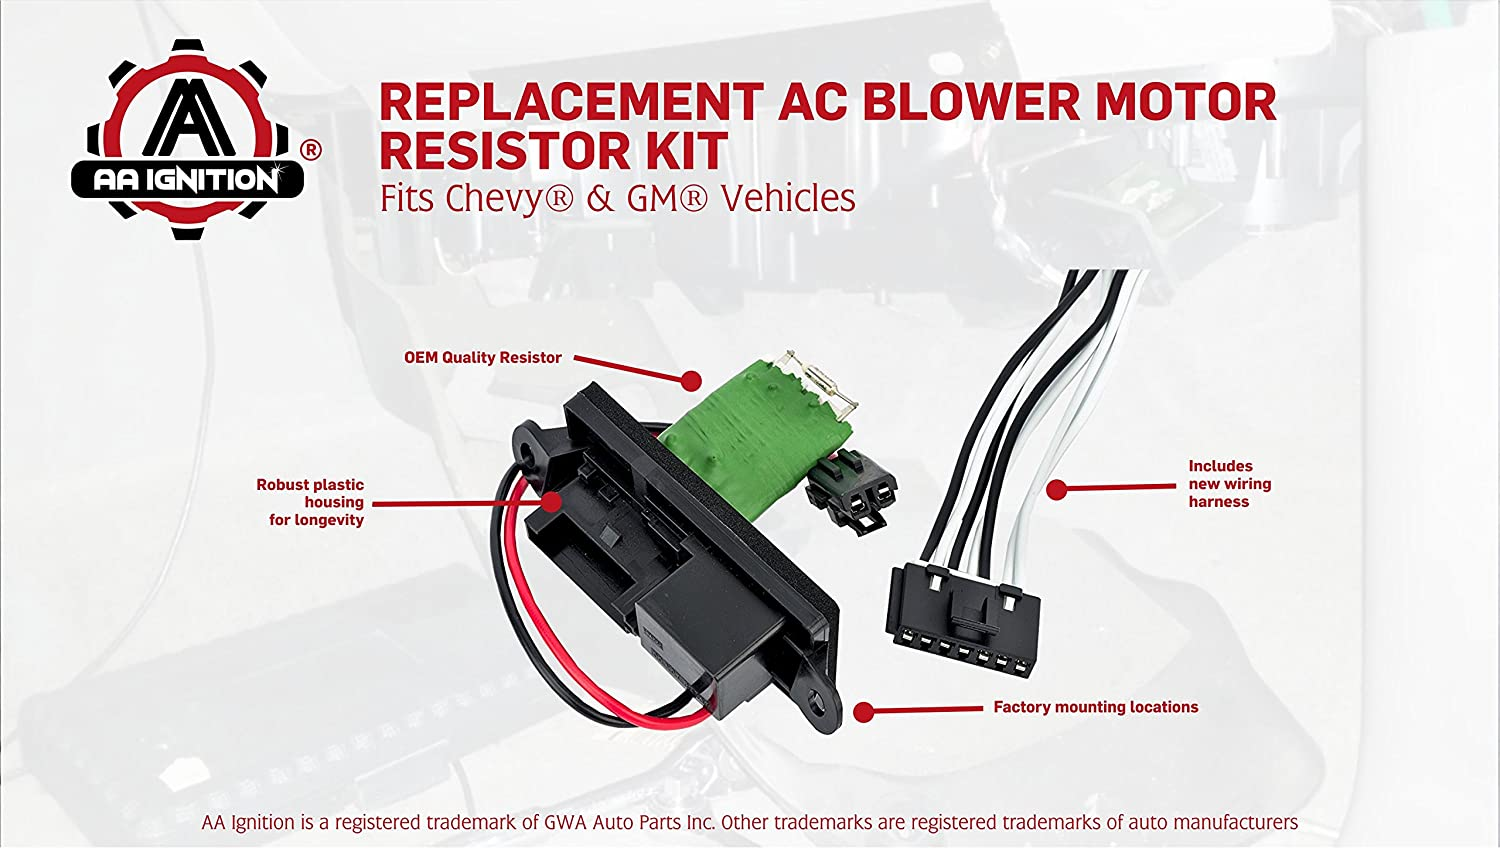 Hvac Blower Motor Fan Resistor Kit With Harness Auto Wiring Replacement Replaces 22807122 15305077 973 409 Fits Cadillac Escalade Chevy Avalanche Silverado